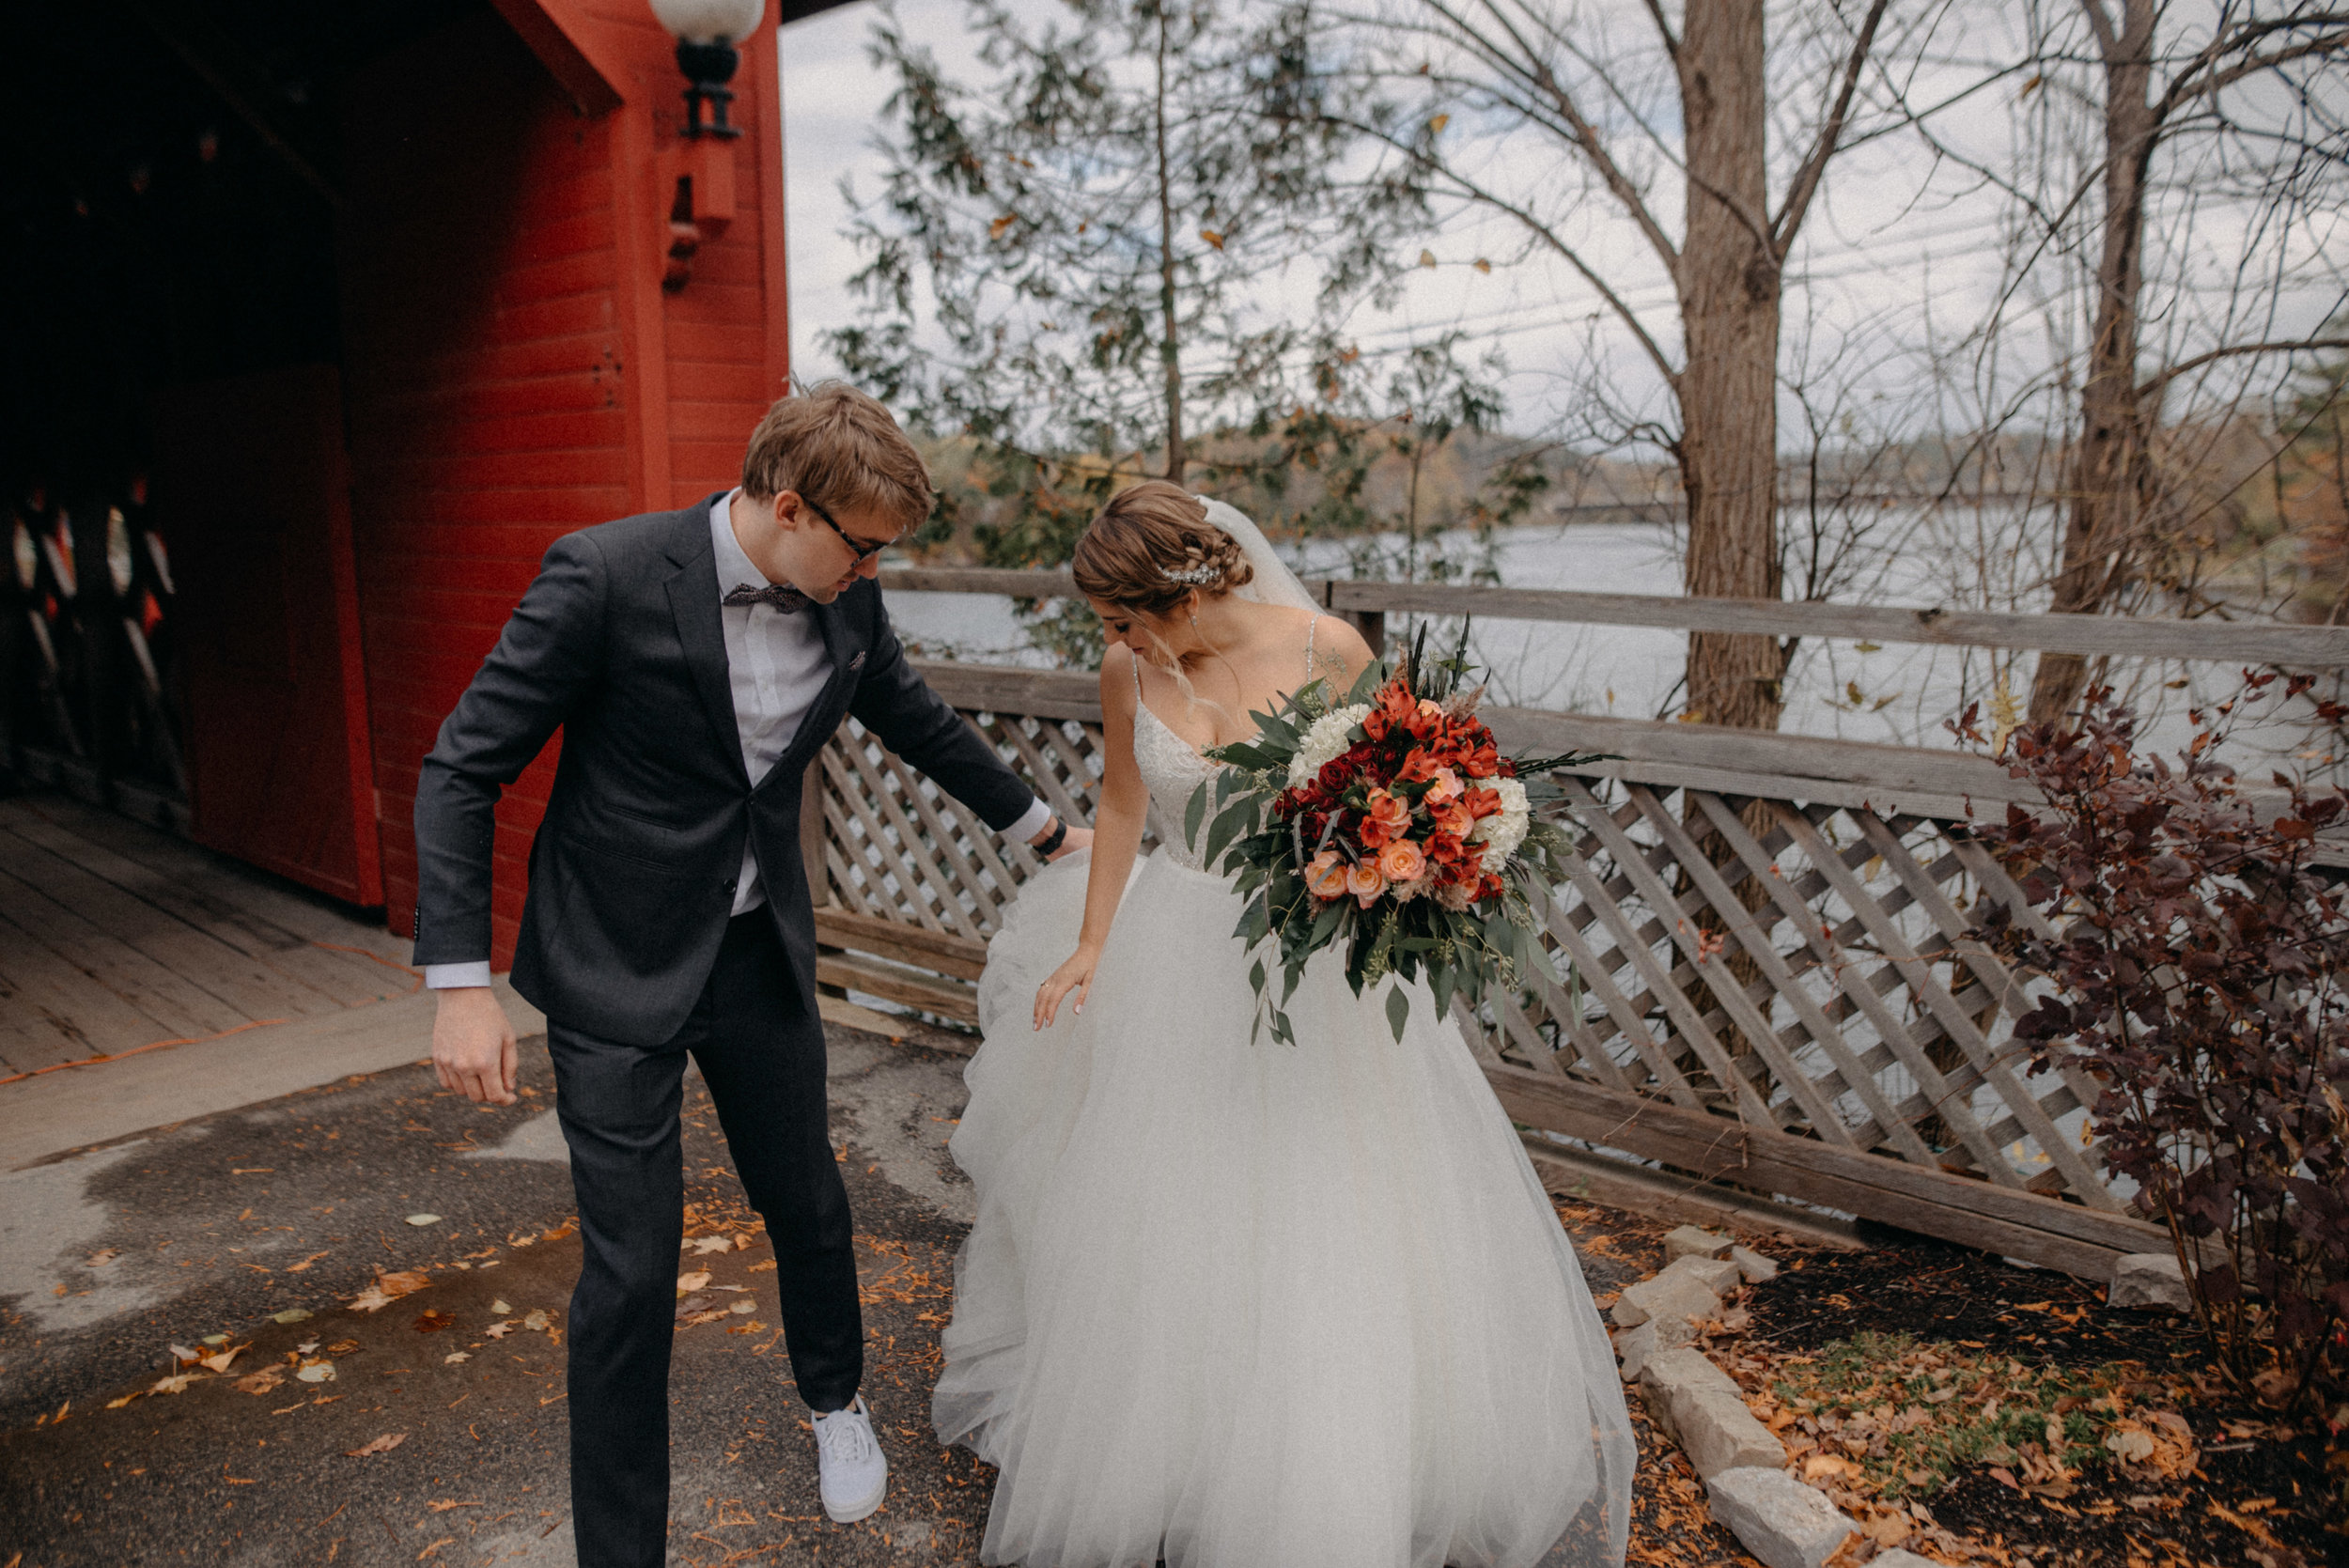 photographe_gatineau_mariage_ottawa_photographer_wedding_natasha_liard_photo_documentary_candid_lifestyle_wakefield_mill_red_bridge (39).jpg